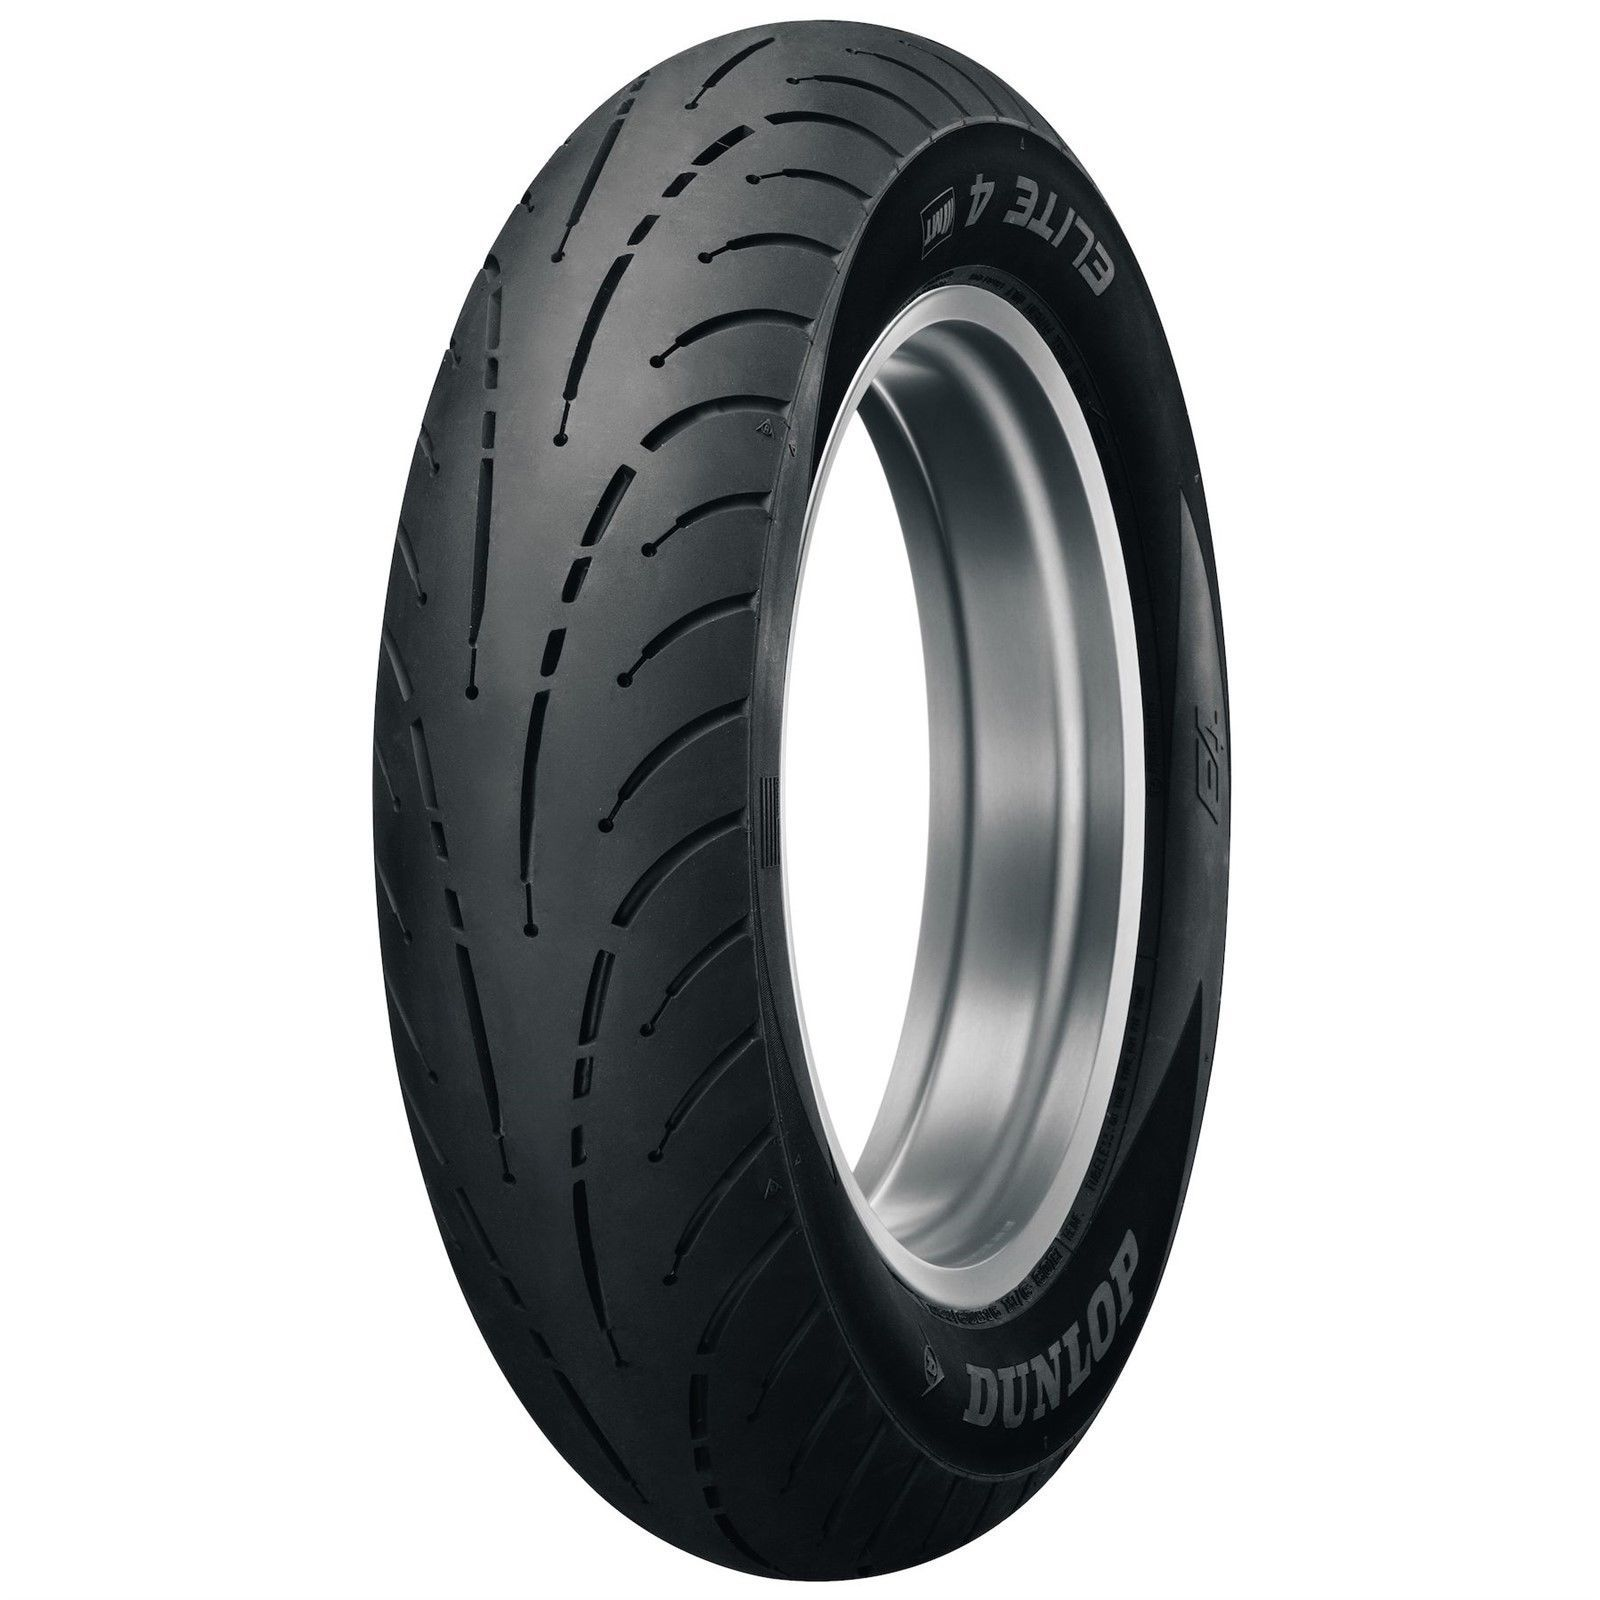 New Dunlop Elite 4 140/90B16 Bias Rear Motorcycle Tire 77H High Mileage